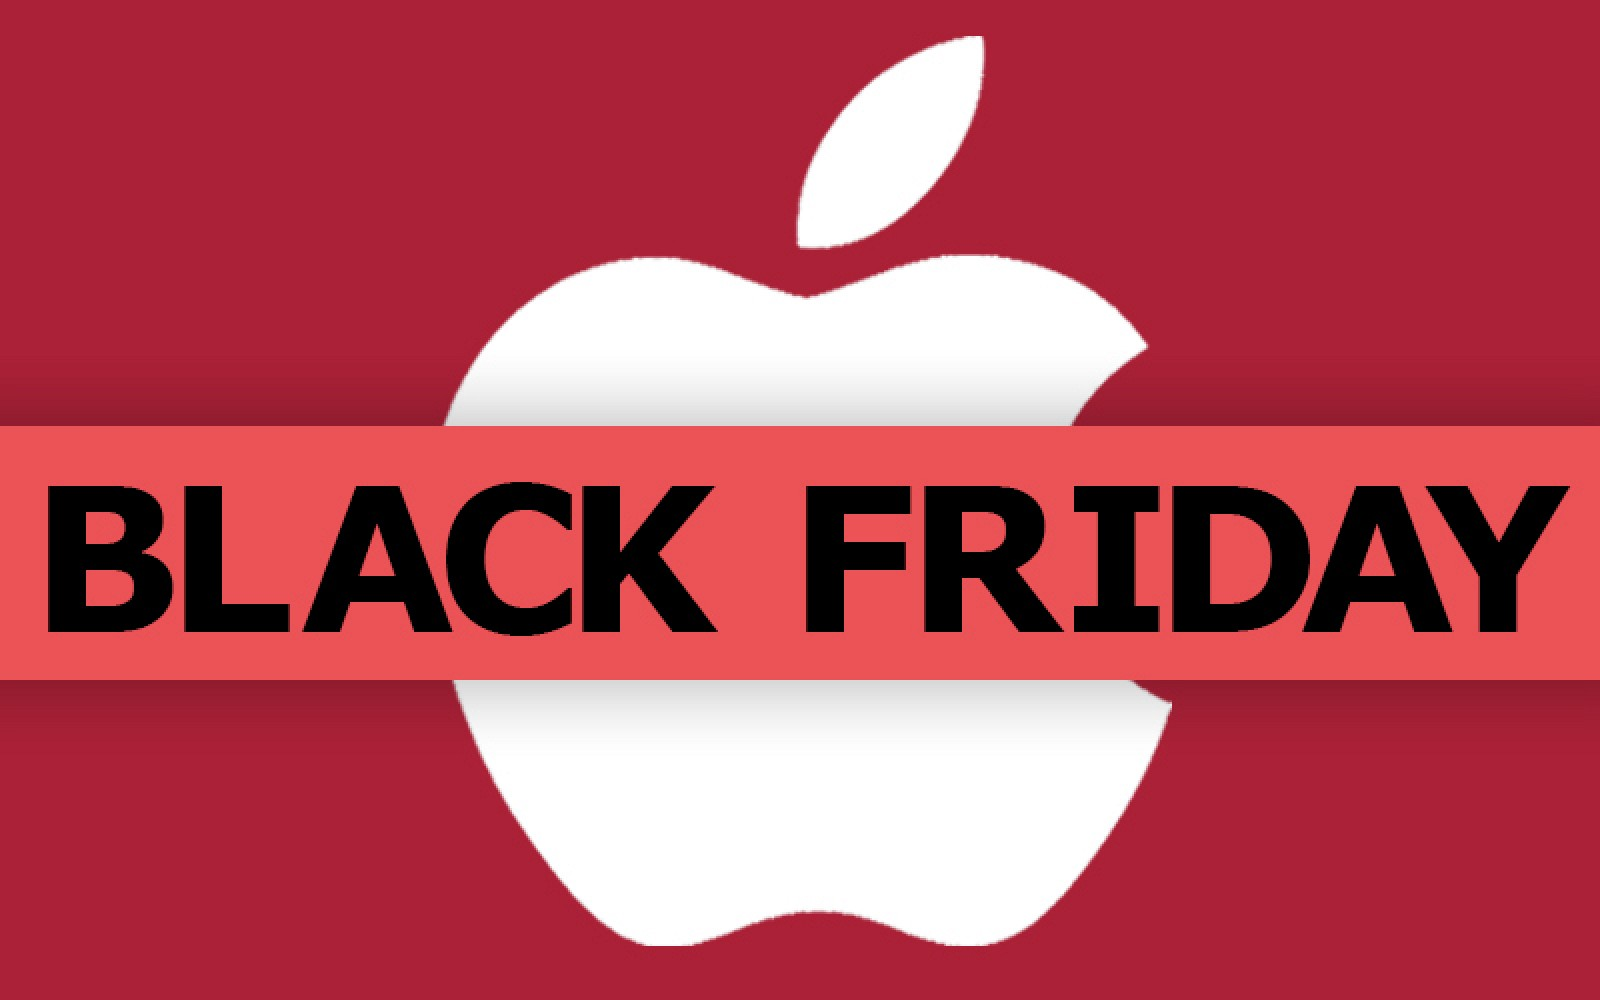 An apple icon behind a Black Friday statement.